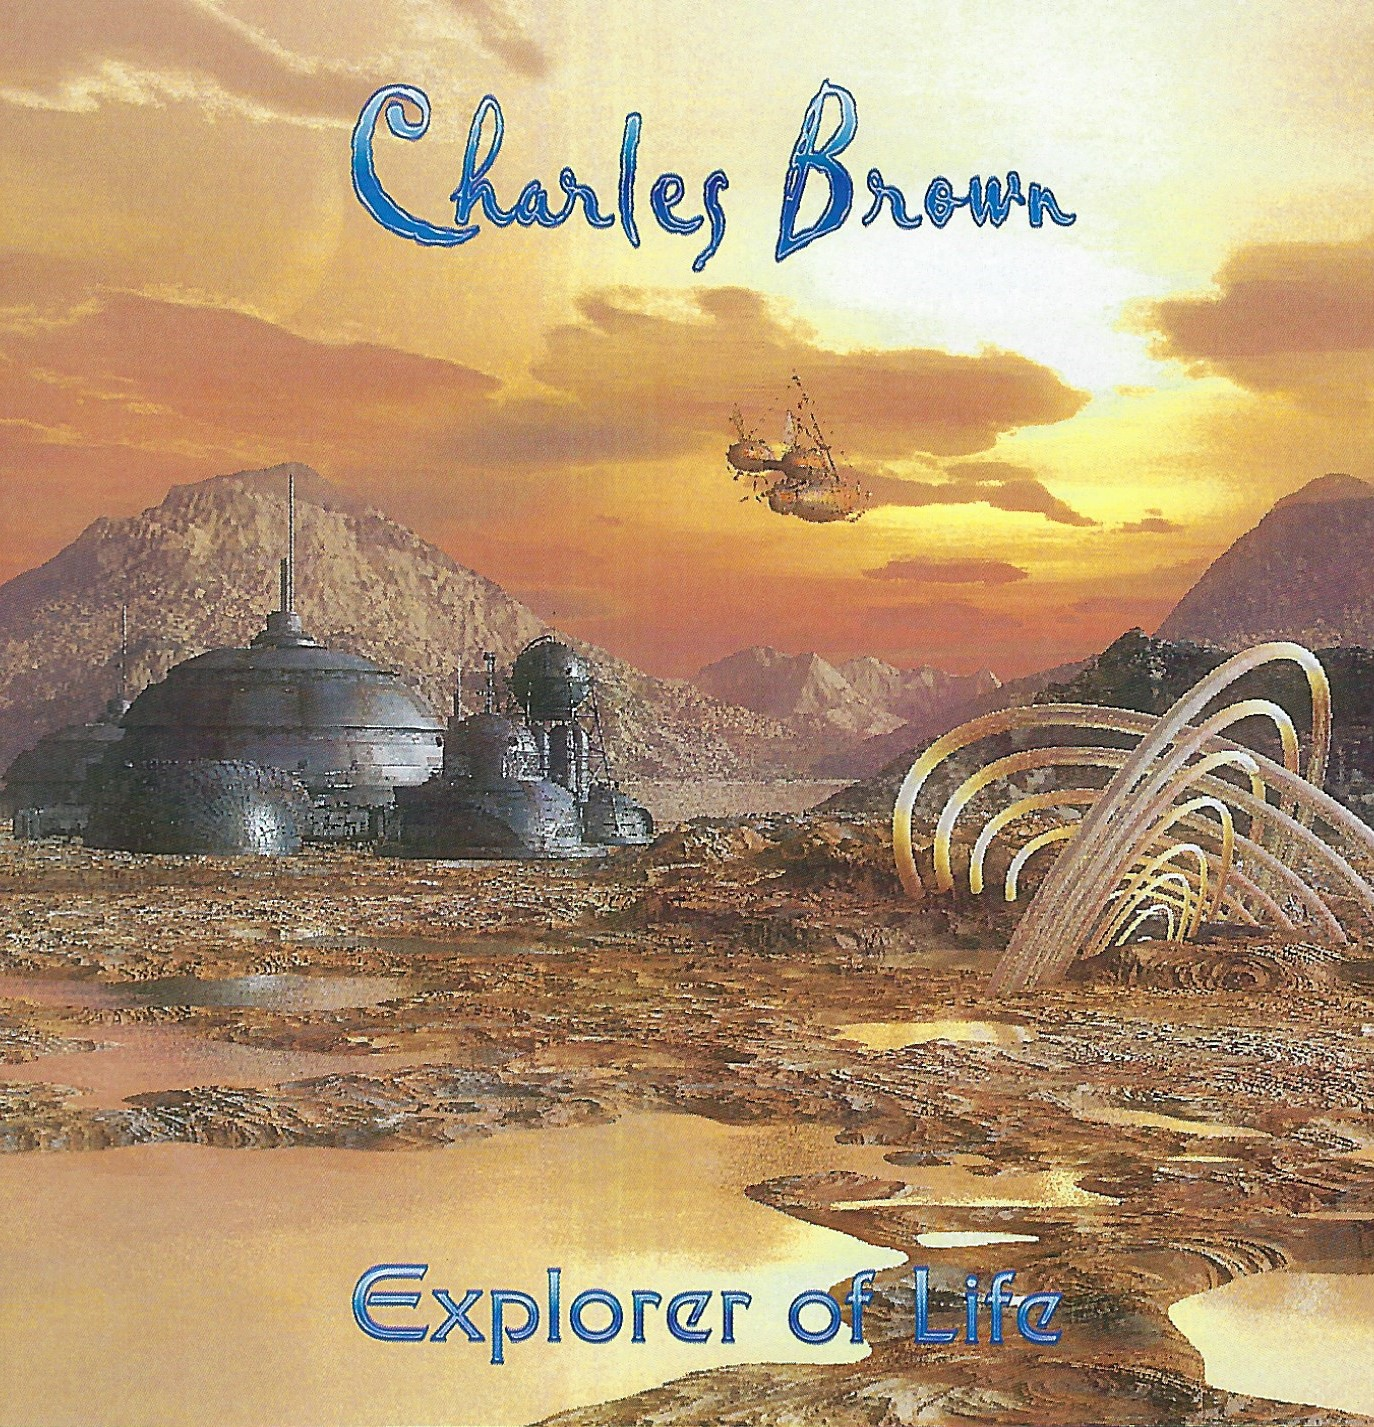 Explorer of Life Cover art